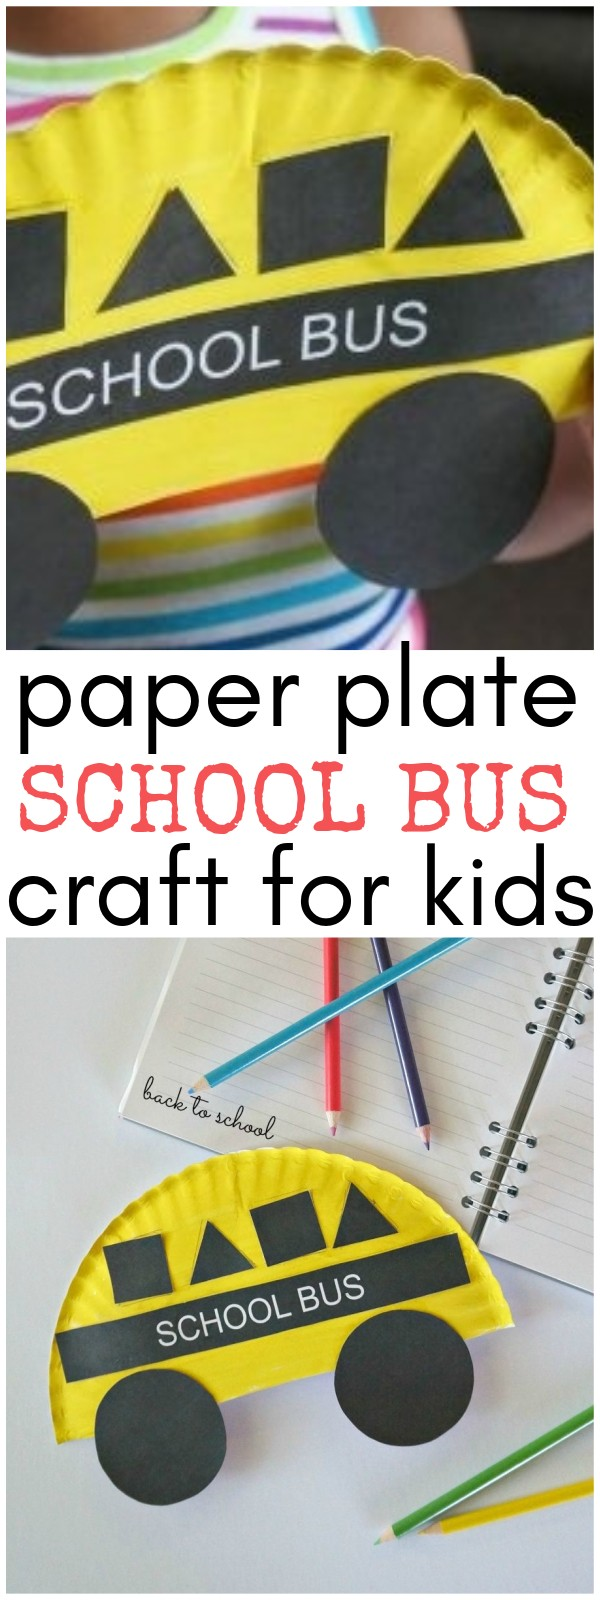 Back to School Crafts for Kids- Paper Plate School Bus Shapes Craft - A fun school bus art project!